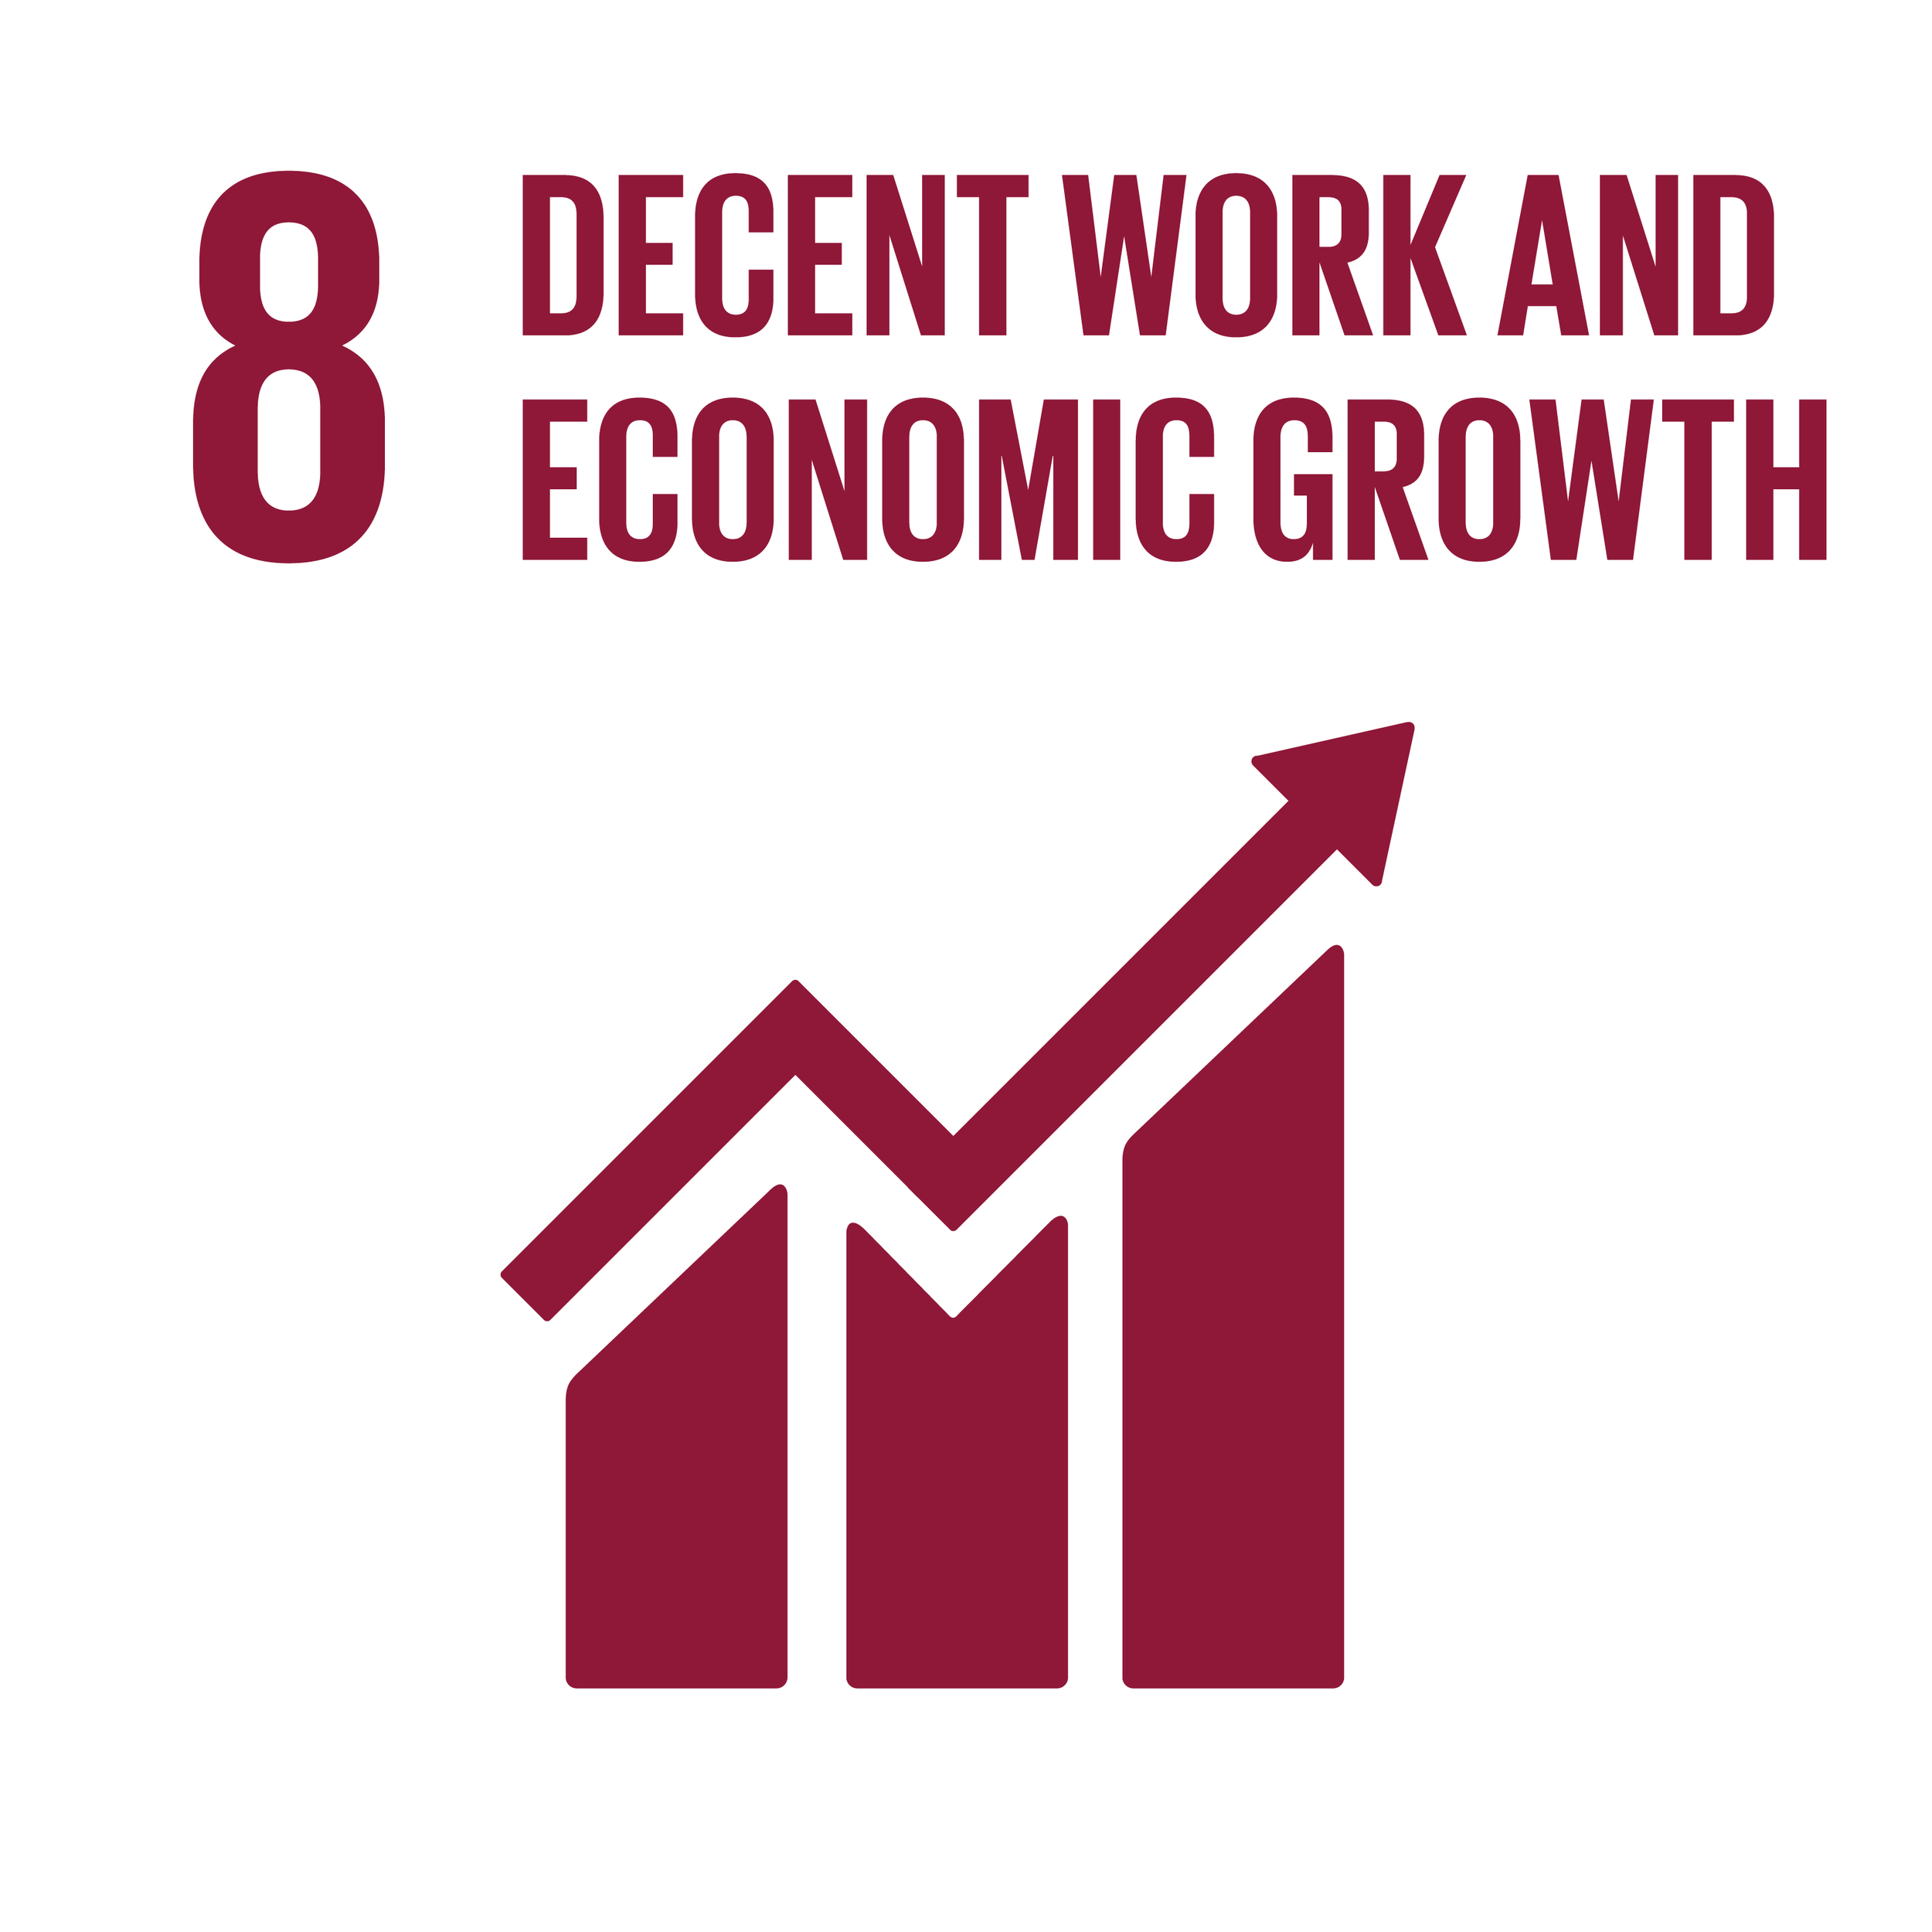 E_INVERTED SDG goals_icons-individual-RGB-08.png